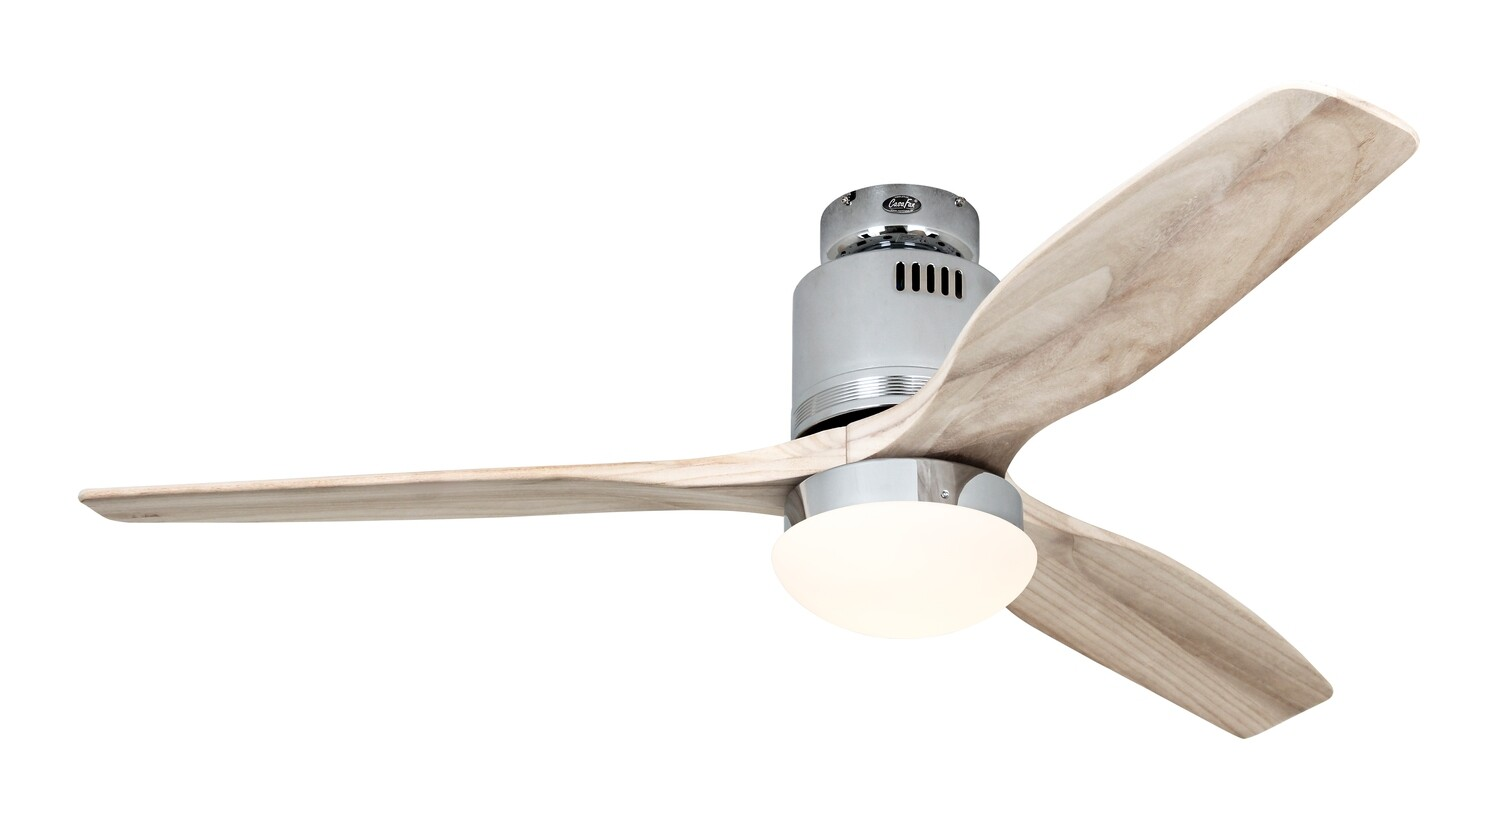 AERODYNAMIX ECO CH energy saving ceiling fan by CASAFAN Ø132 with remote control included - Polished Chrome / Natural